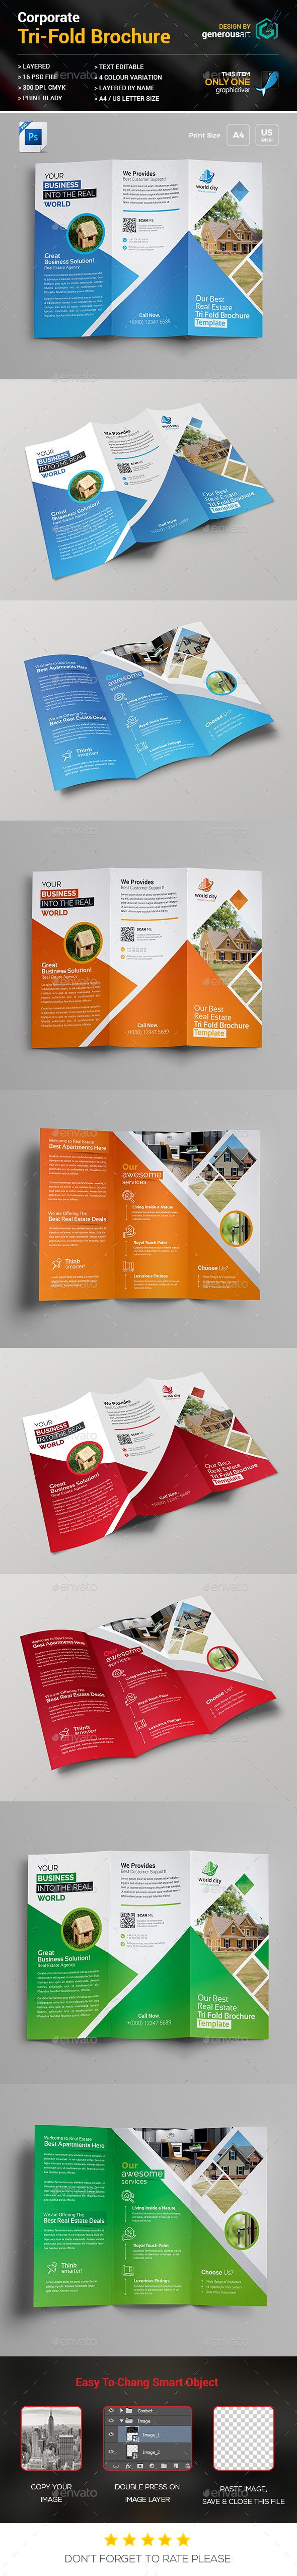 Real Estate Tri-Fold - Corporate Brochures Download here : https://graphicriver.net/item/real-estate-trifold/19668990?s_rank=63&ref=Al-fatih